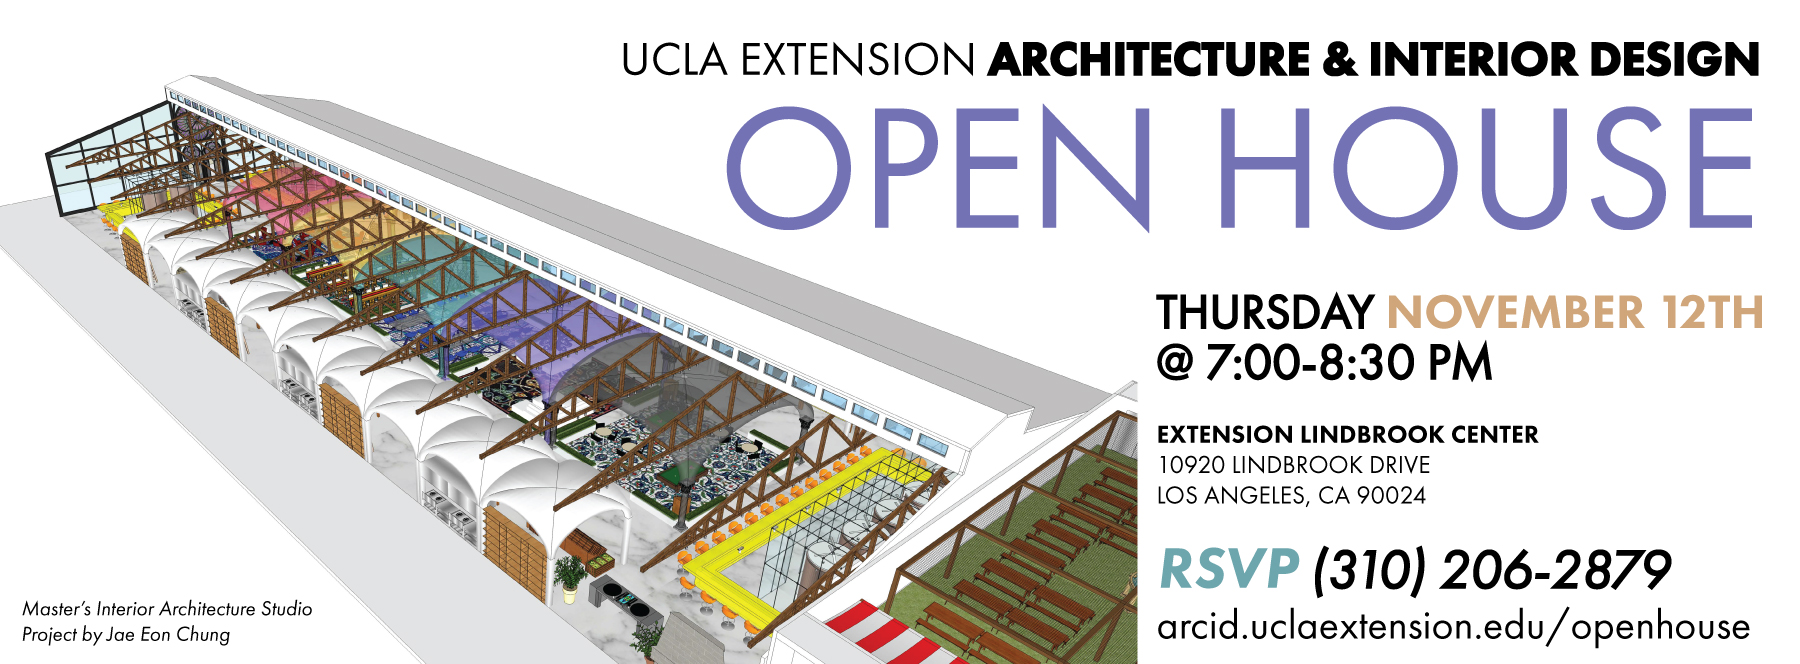 Wondrous Get Ready For The Ucla Extension Arc Id Information Session Download Free Architecture Designs Grimeyleaguecom